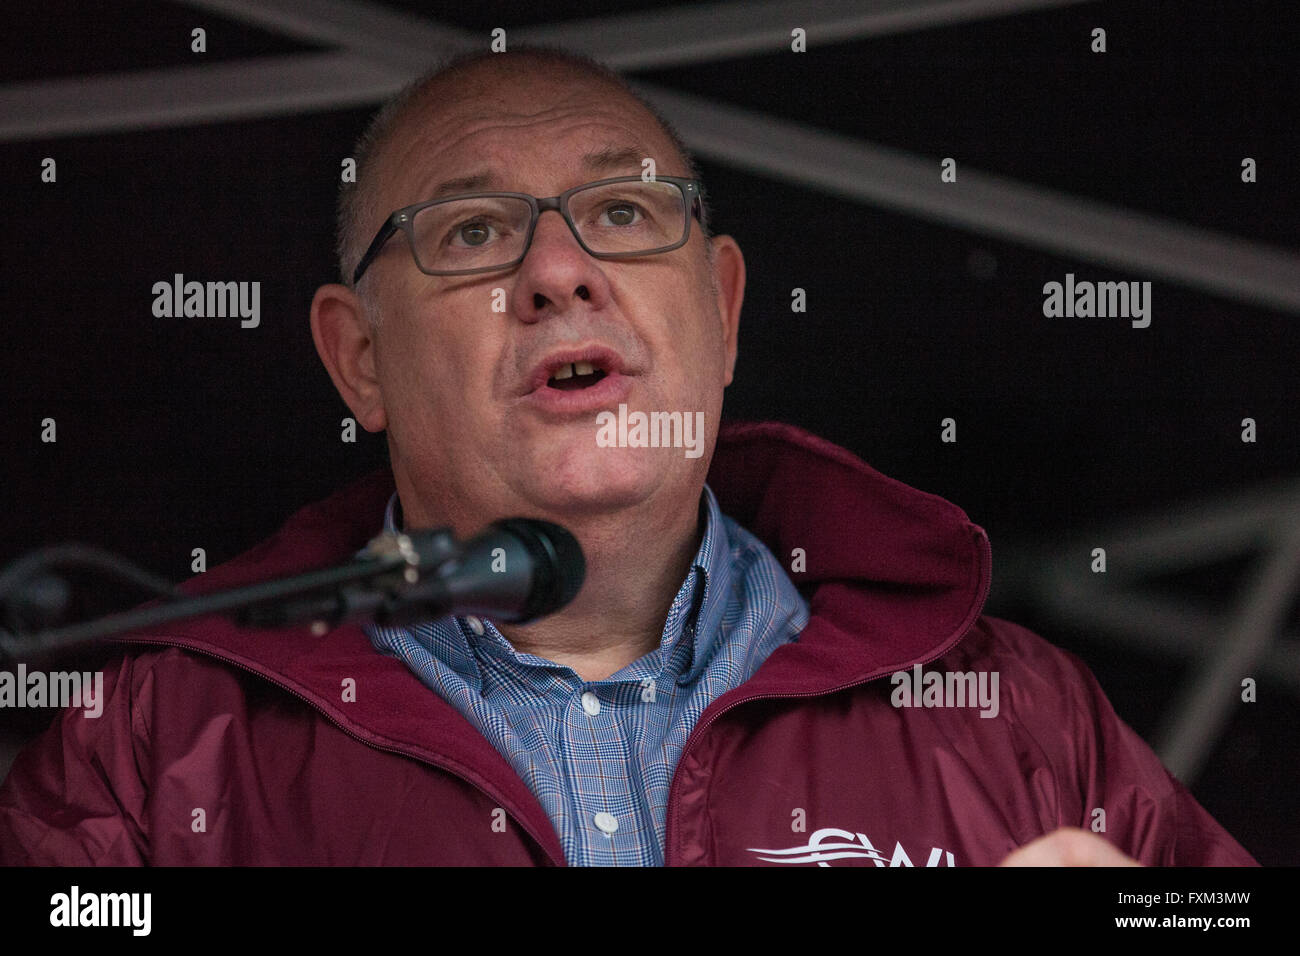 London, UK. 16th April, 2016. Dave Ward, General Secretary of the Communication Workers' Union (CWU), addresses - Stock Image